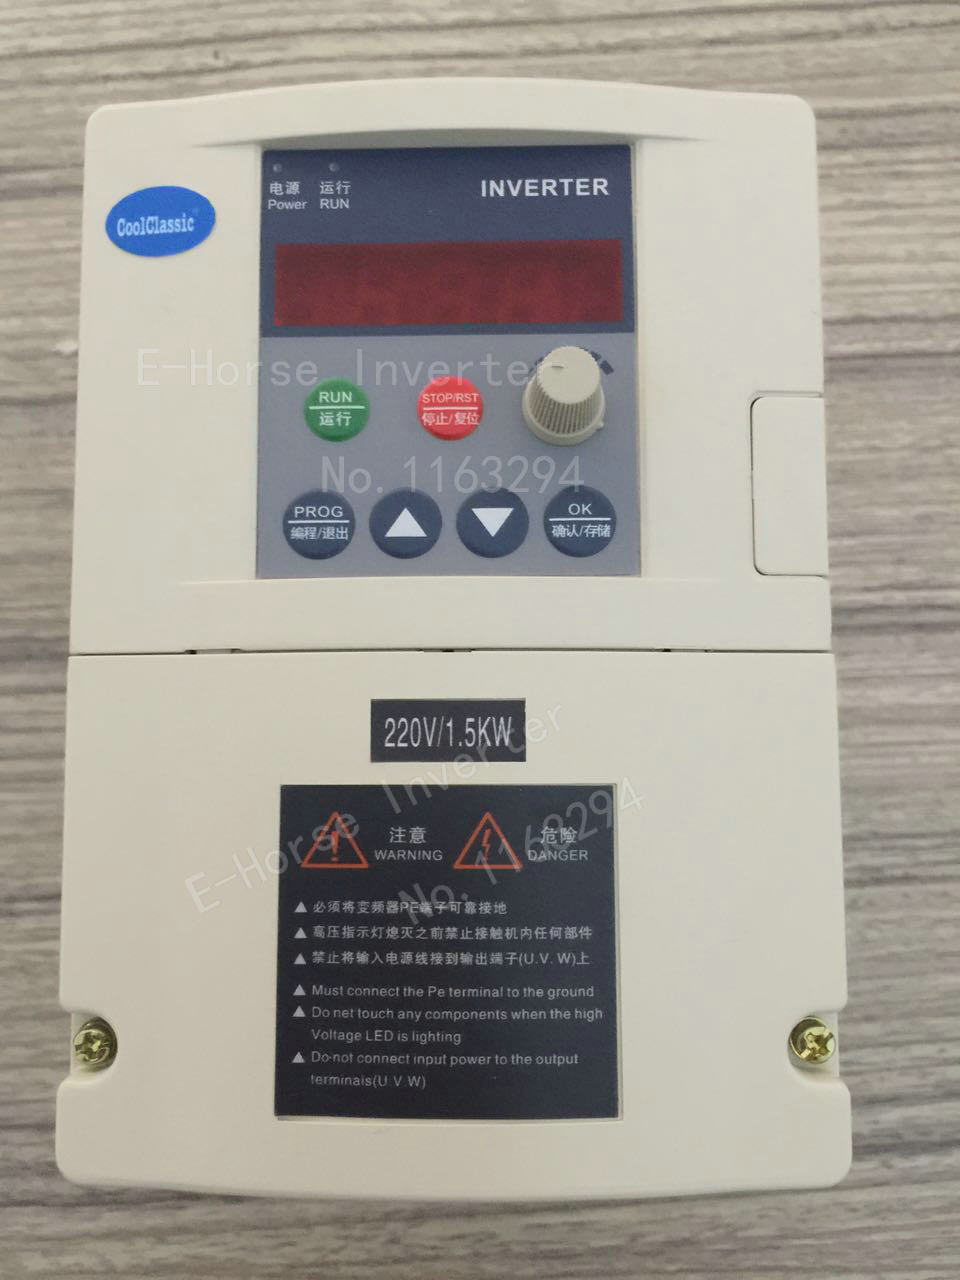 Vfd inverter free shipping jfd 1500w coolclassic inverter for 3 phase vfd single phase motor